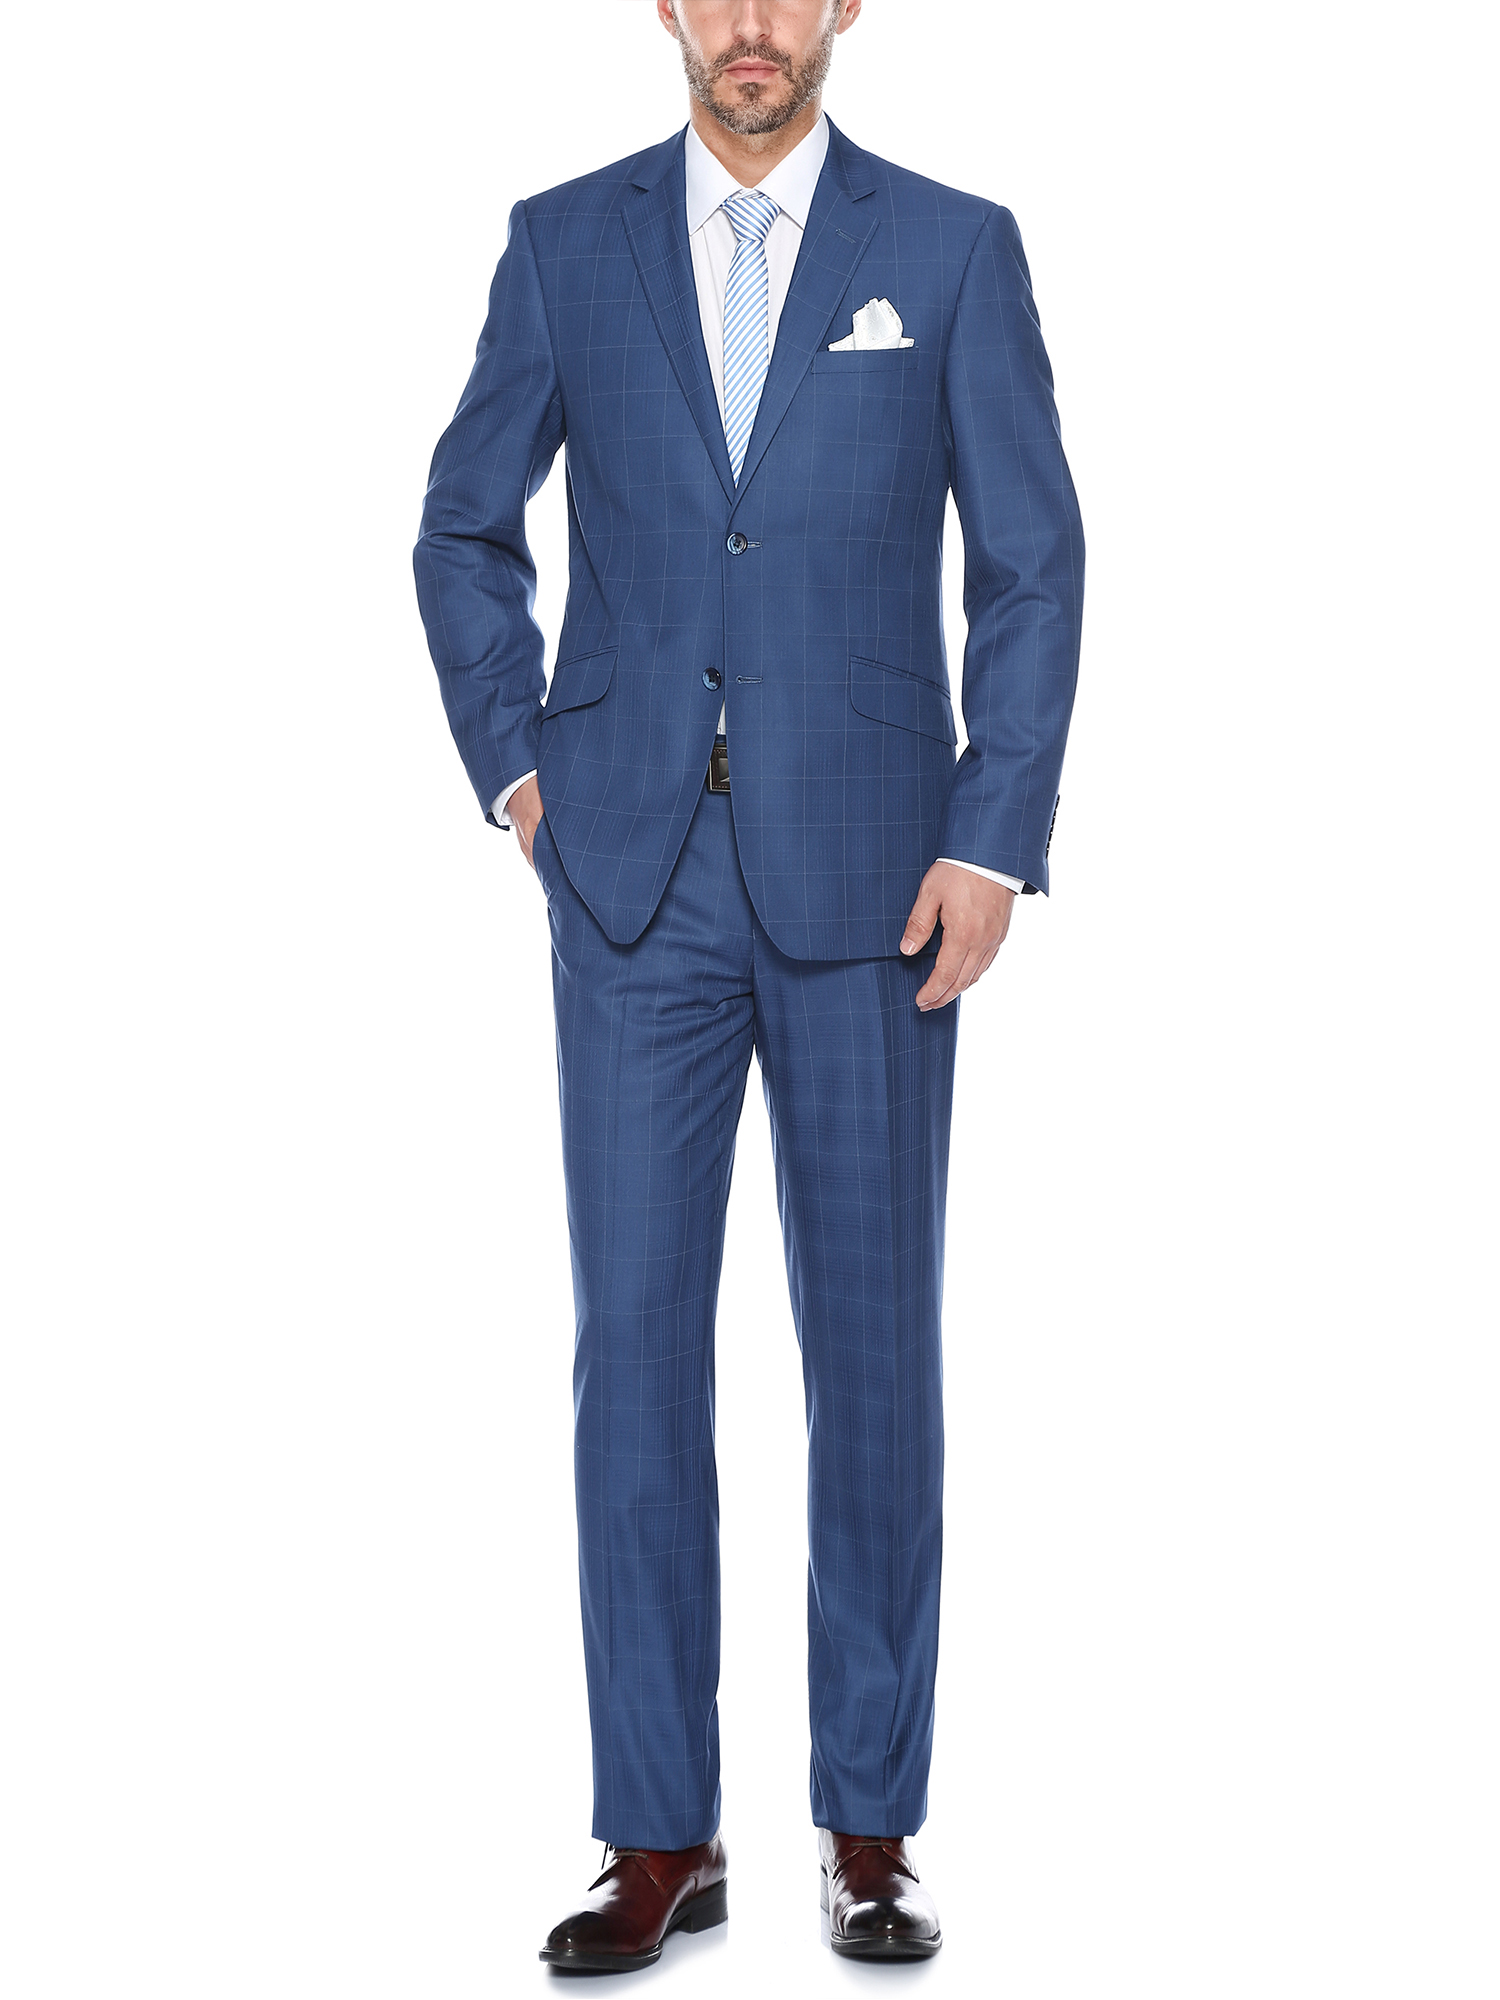 Men's Stylish Windowpane Slim Fit Notch Lapel Suit